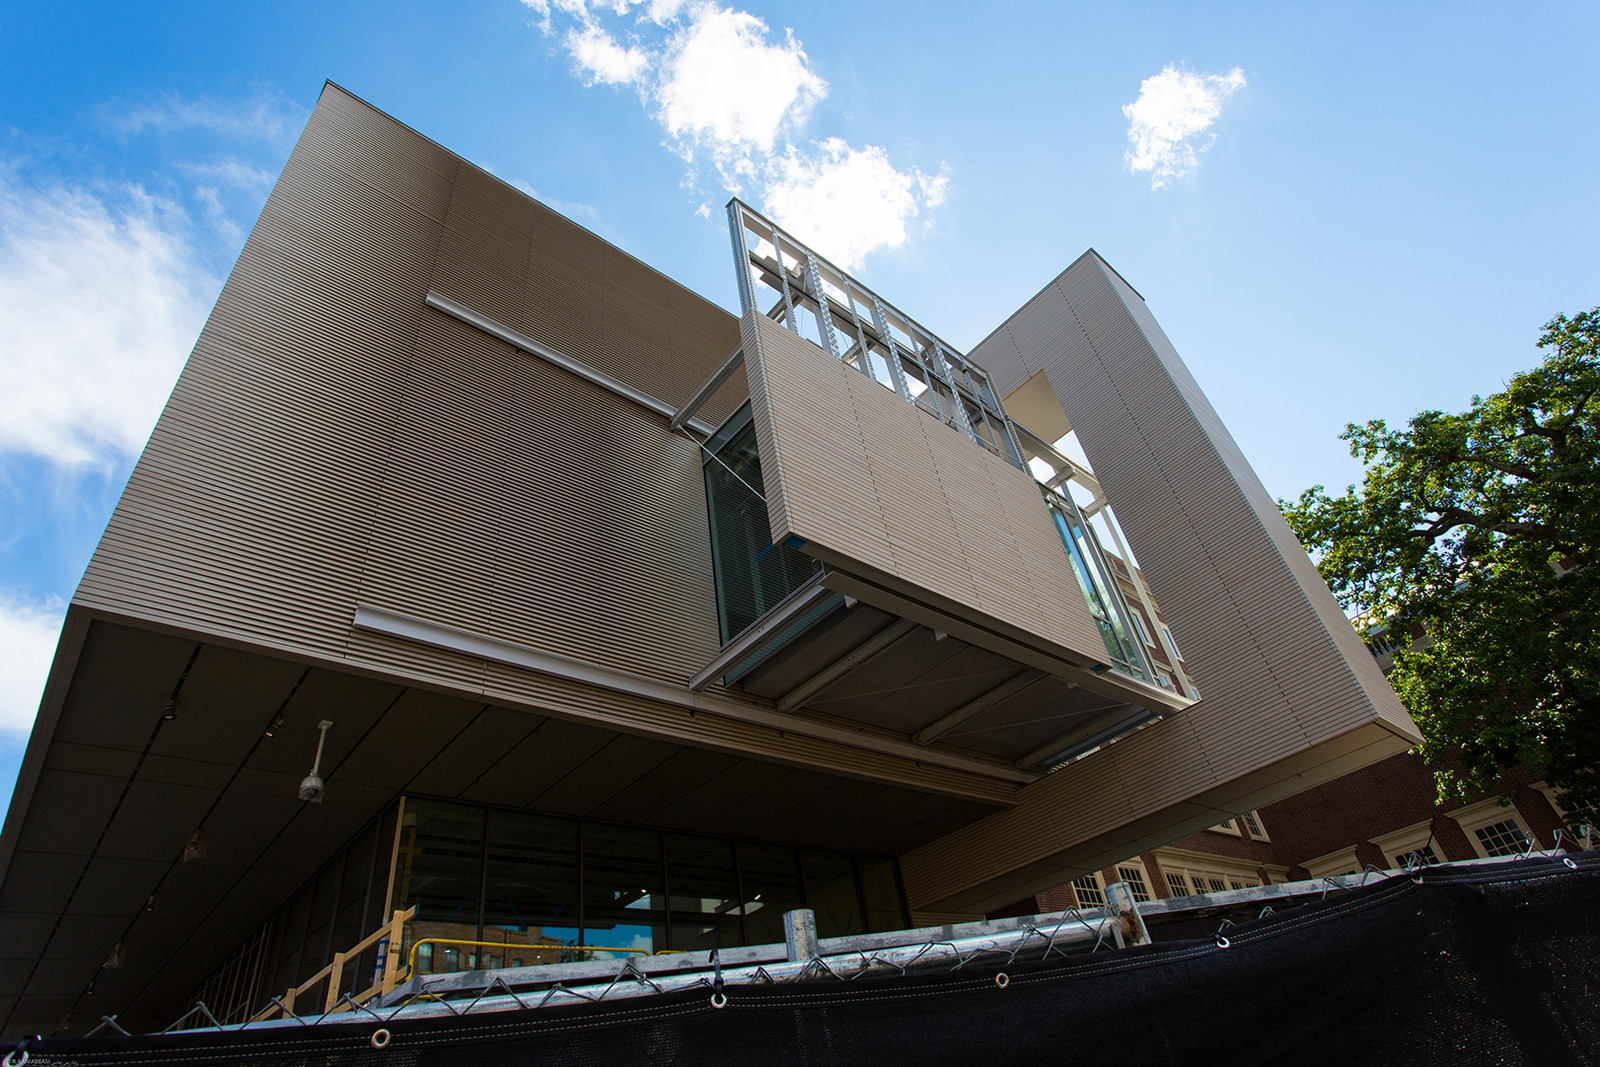 Moveable panels on the north and south sides of the addition can control the flow of natural light into the Harvard Art Museum. The wood exterior cladding adds a warmth to this very modern addition.